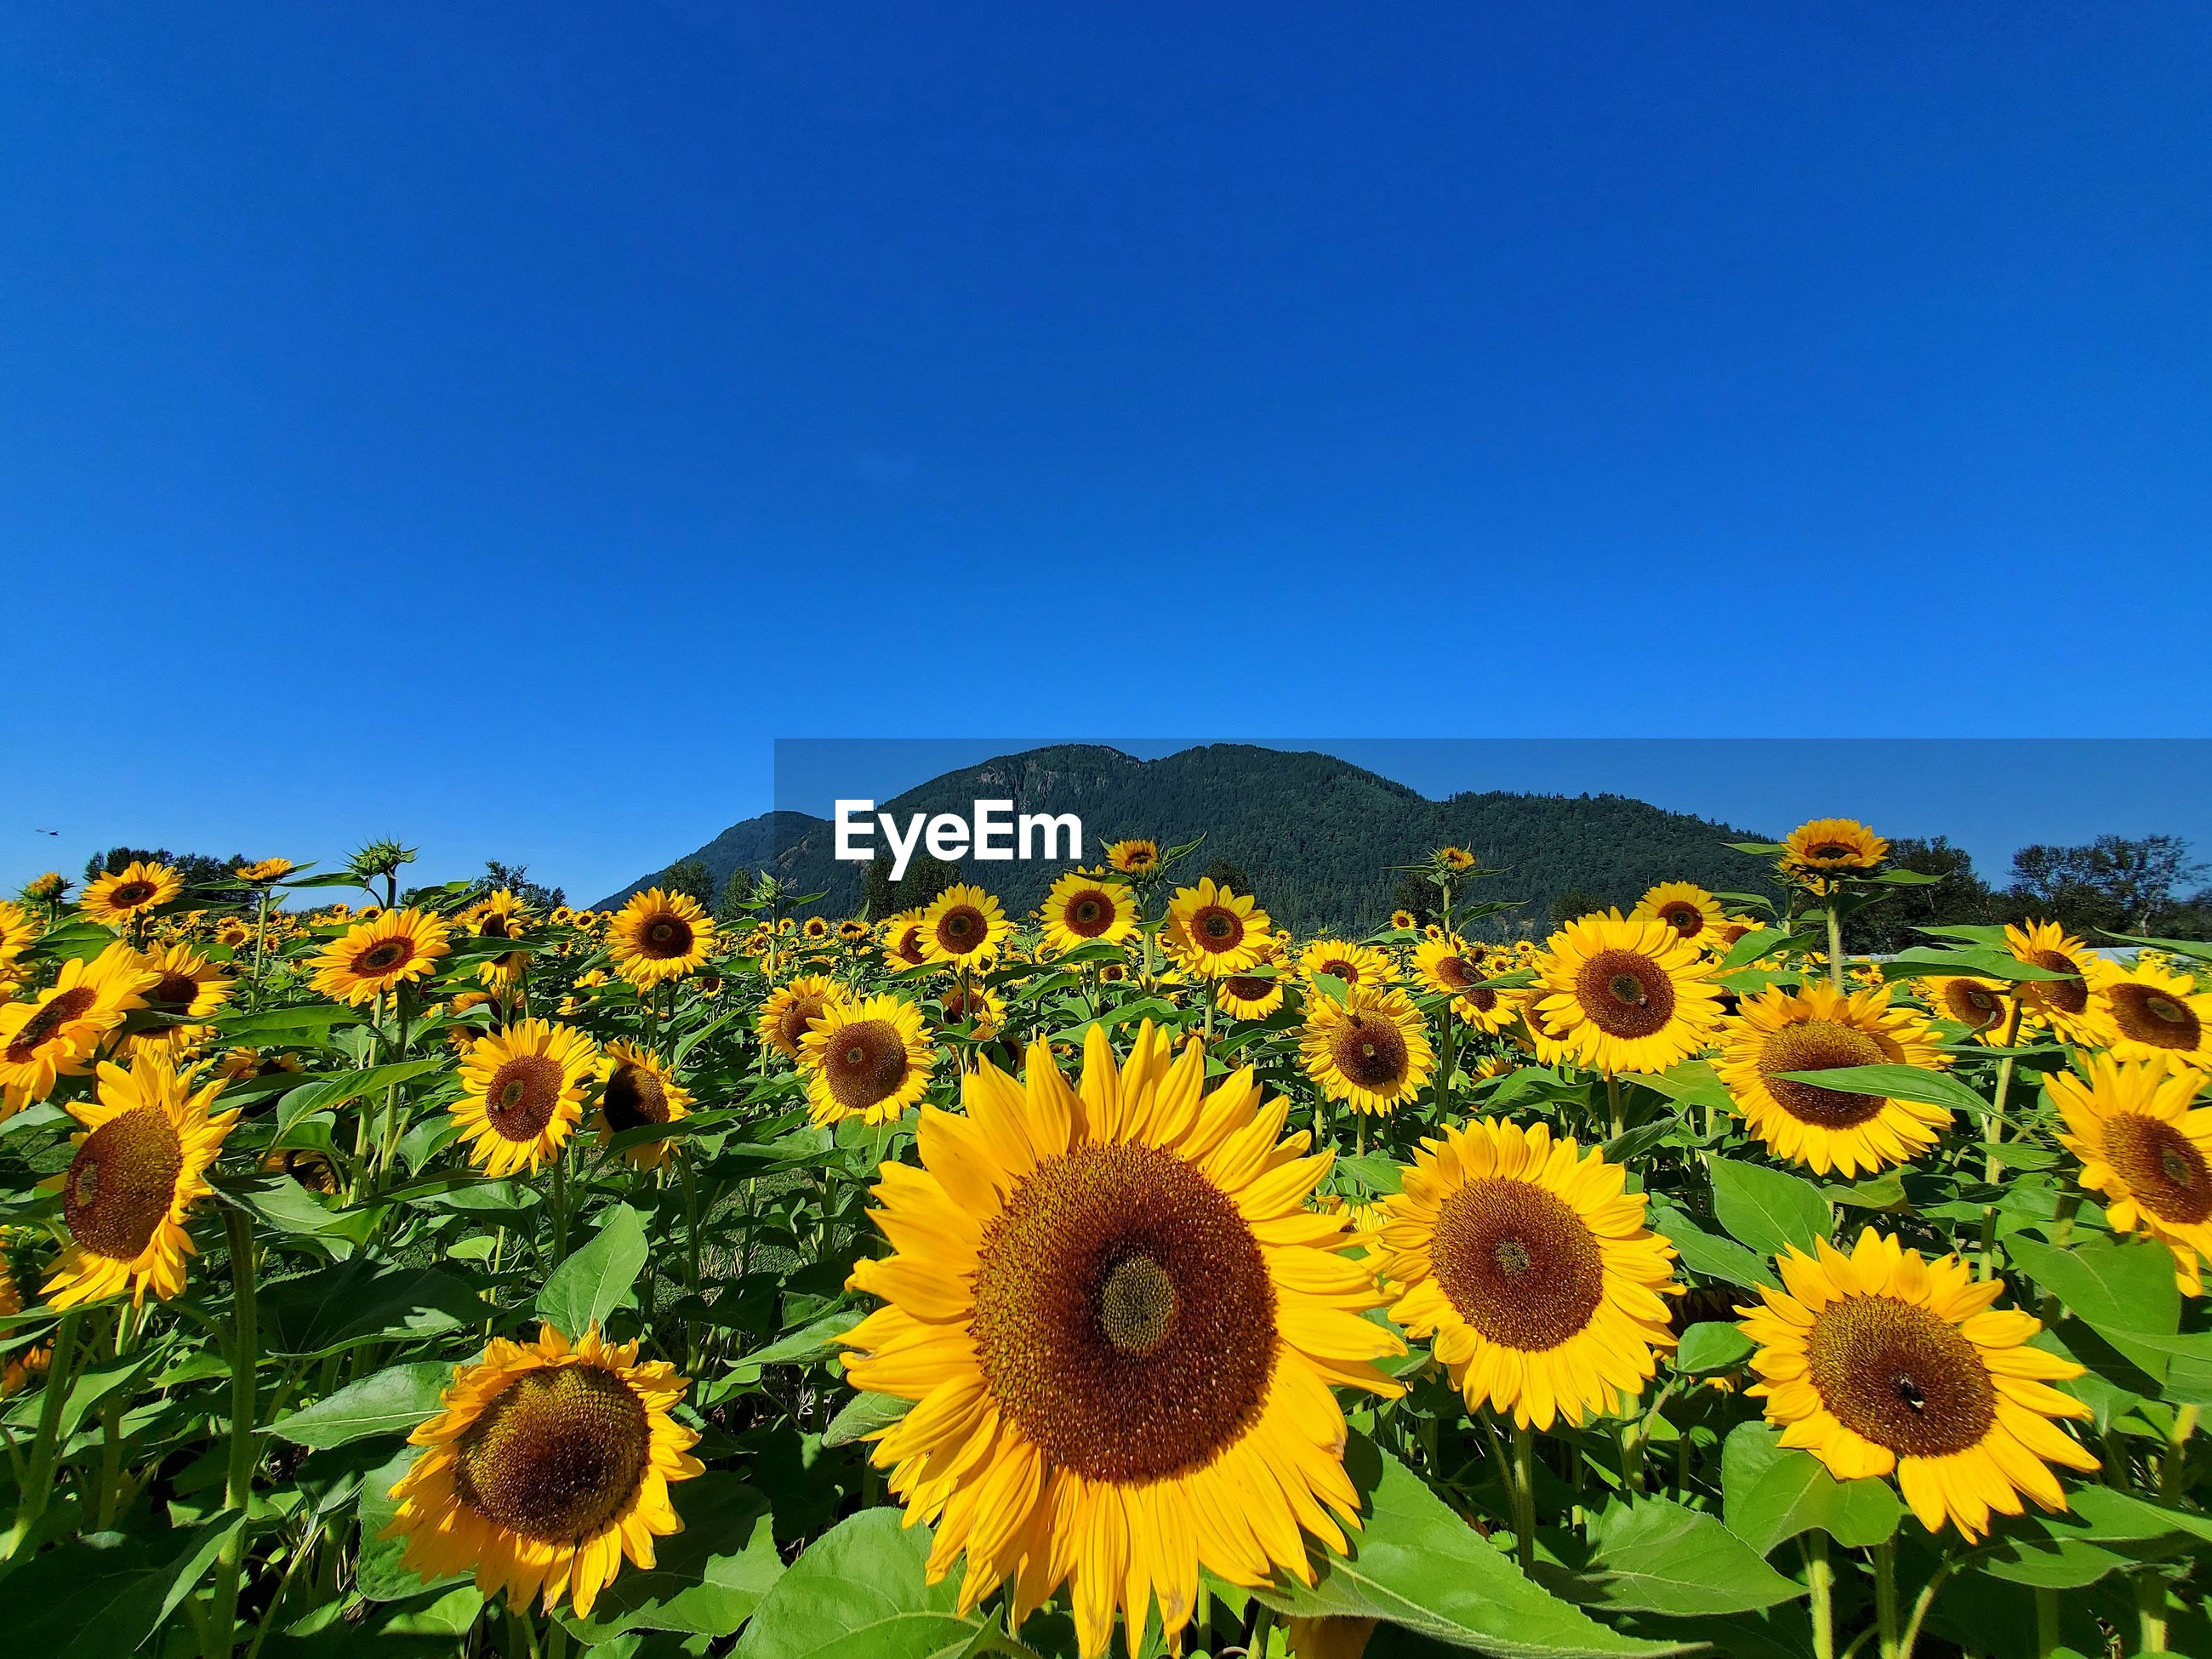 SUNFLOWER FIELD AGAINST CLEAR BLUE SKY